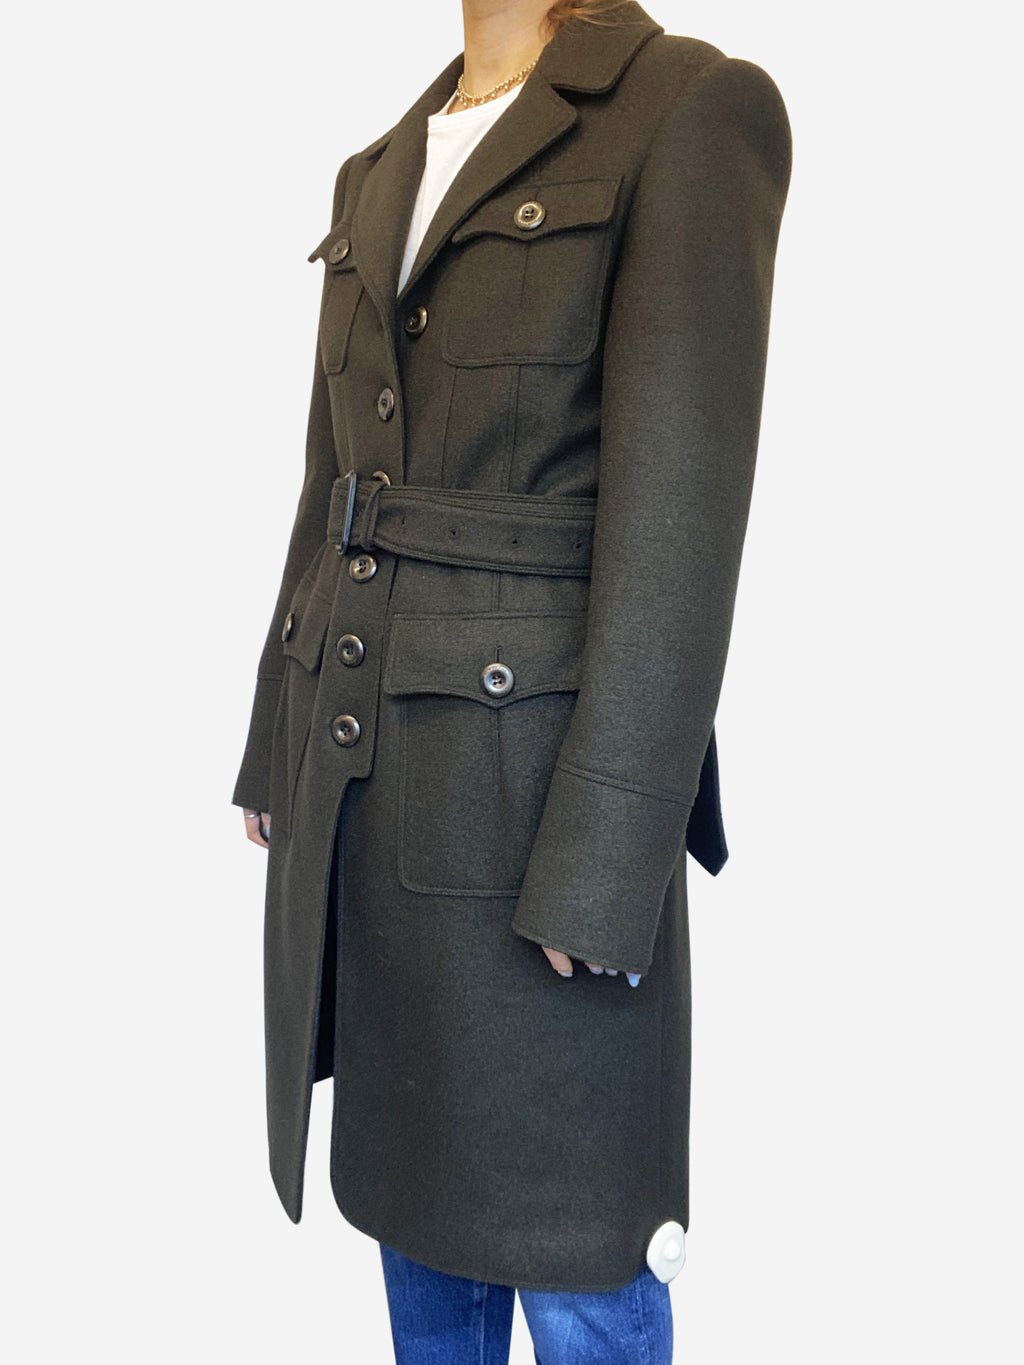 Khaki military style coat with brown leather belt - size S